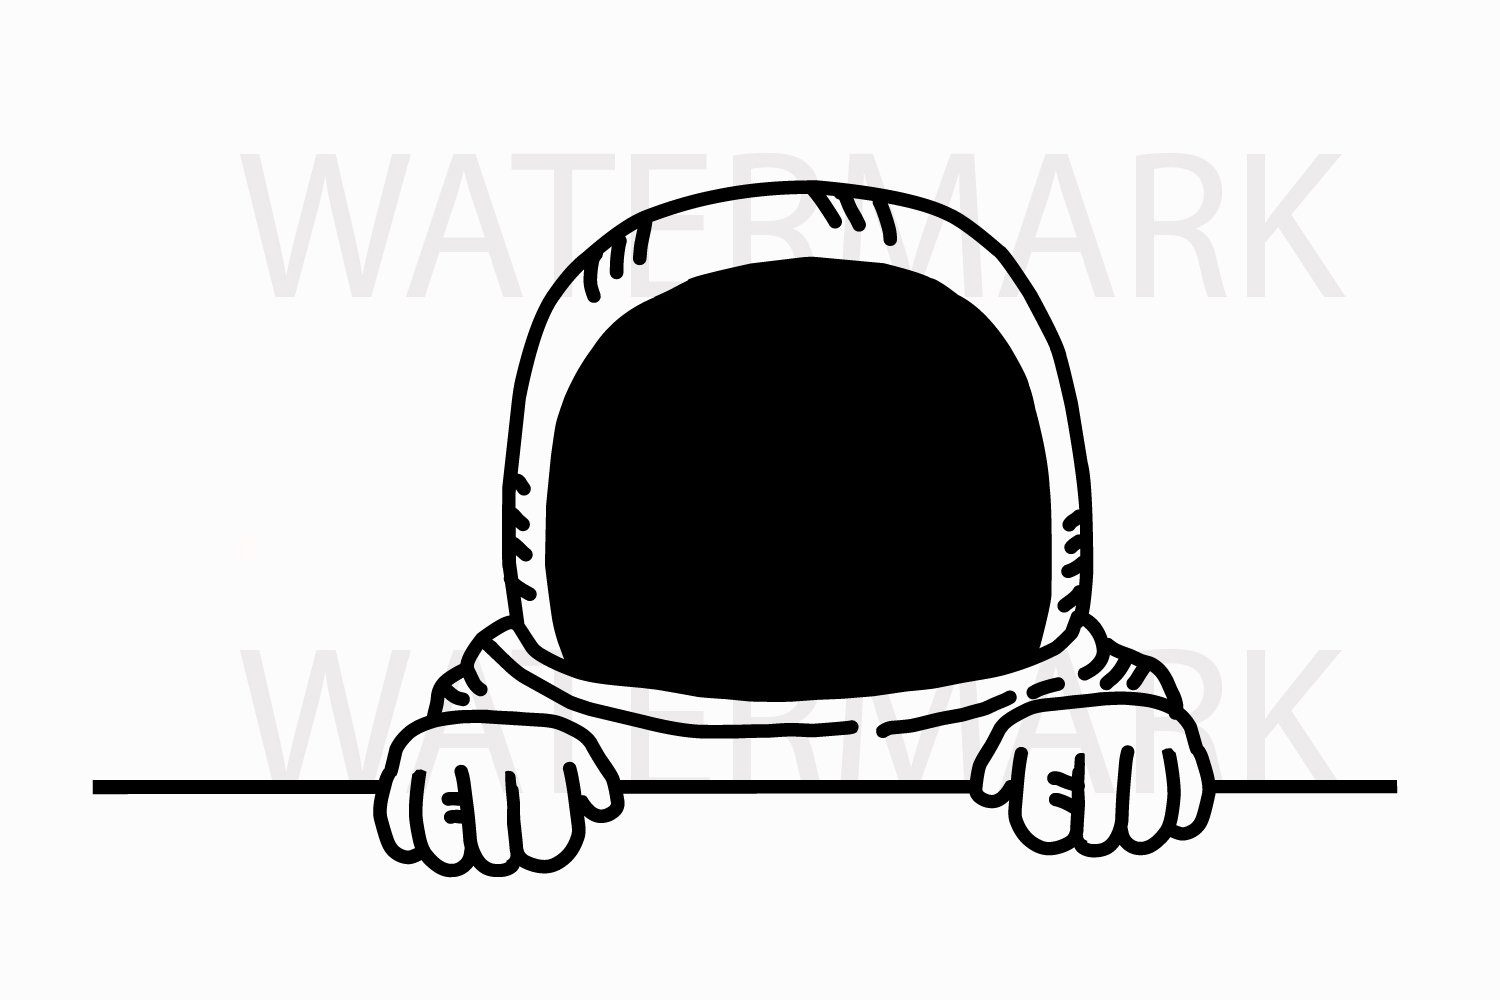 Astronaut Peeping and saying hello - SVG/JPG/PNG Hand Drawing example image 1